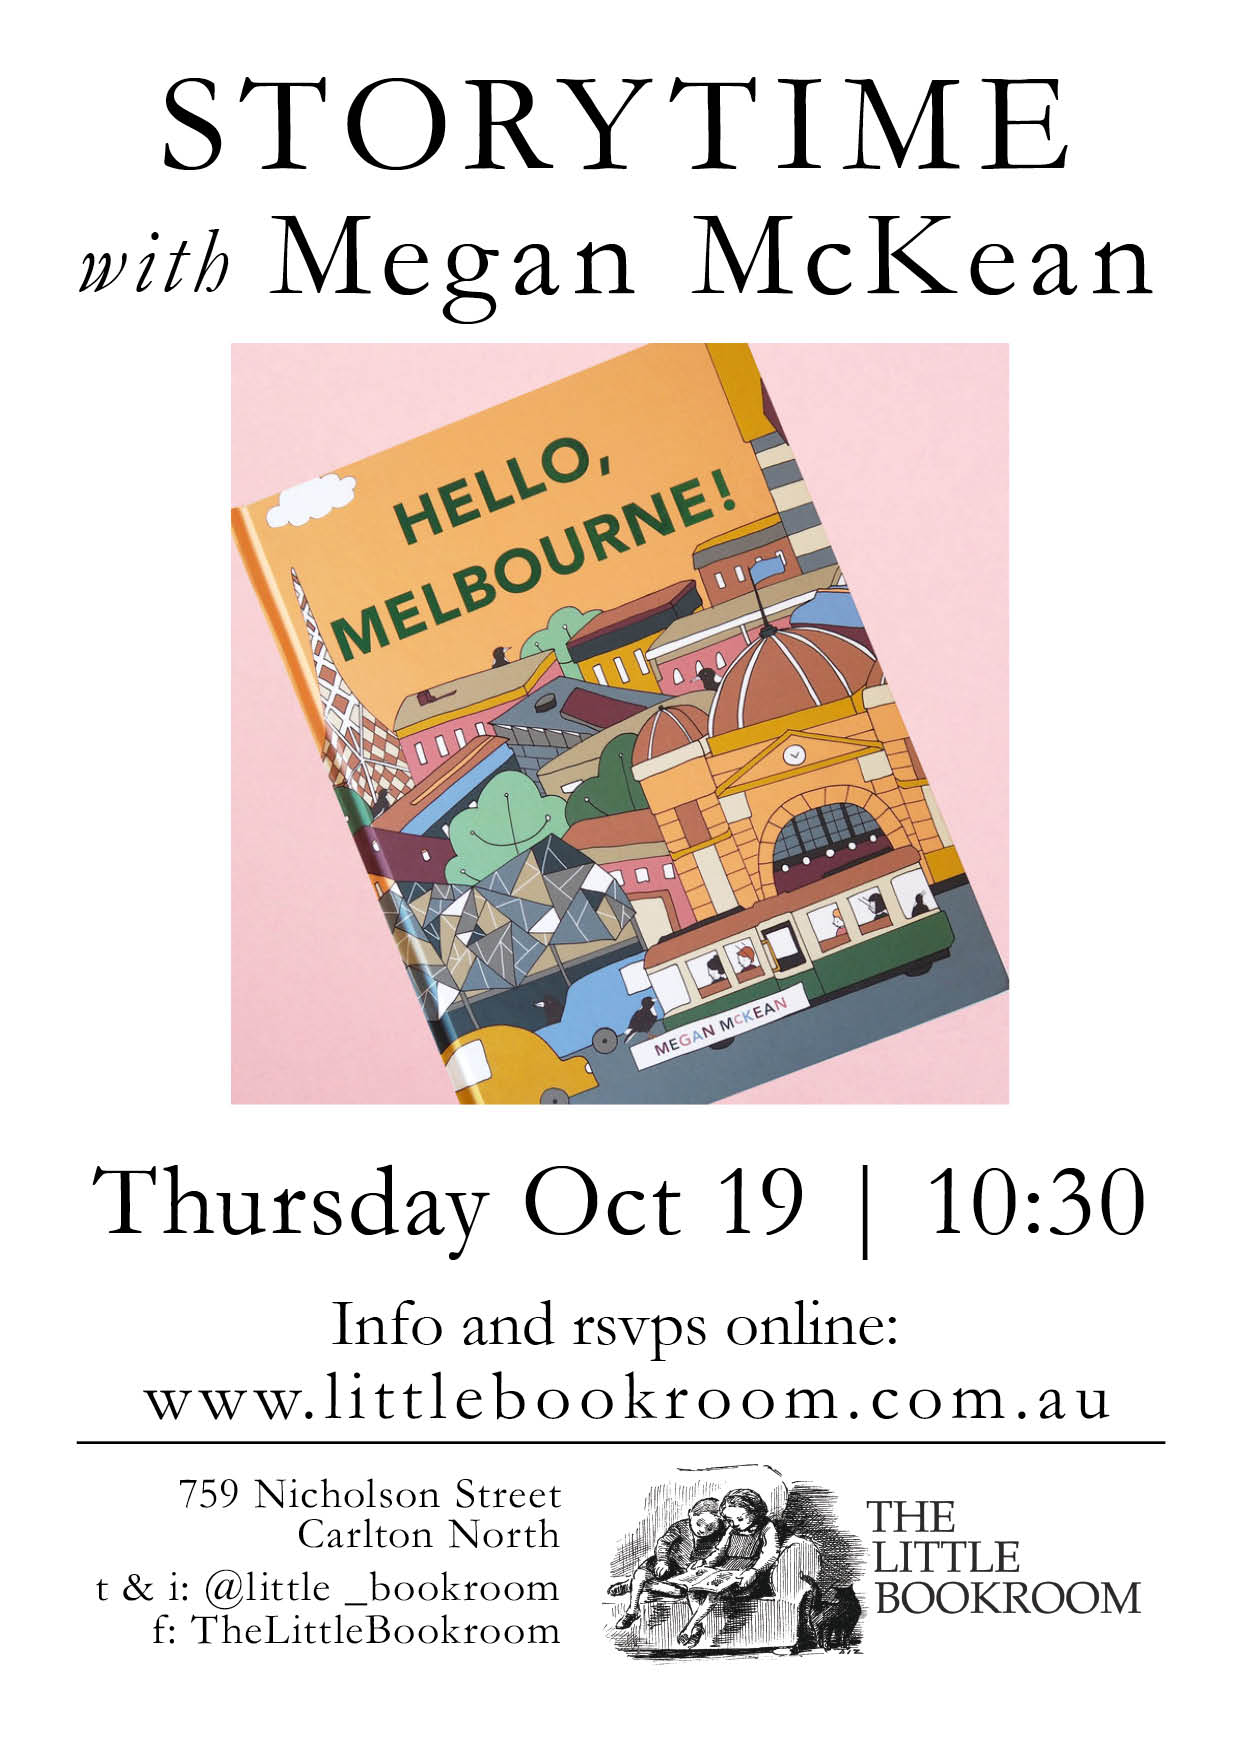 Storytime with Megan McKean - Thursday October 19th 10:30am